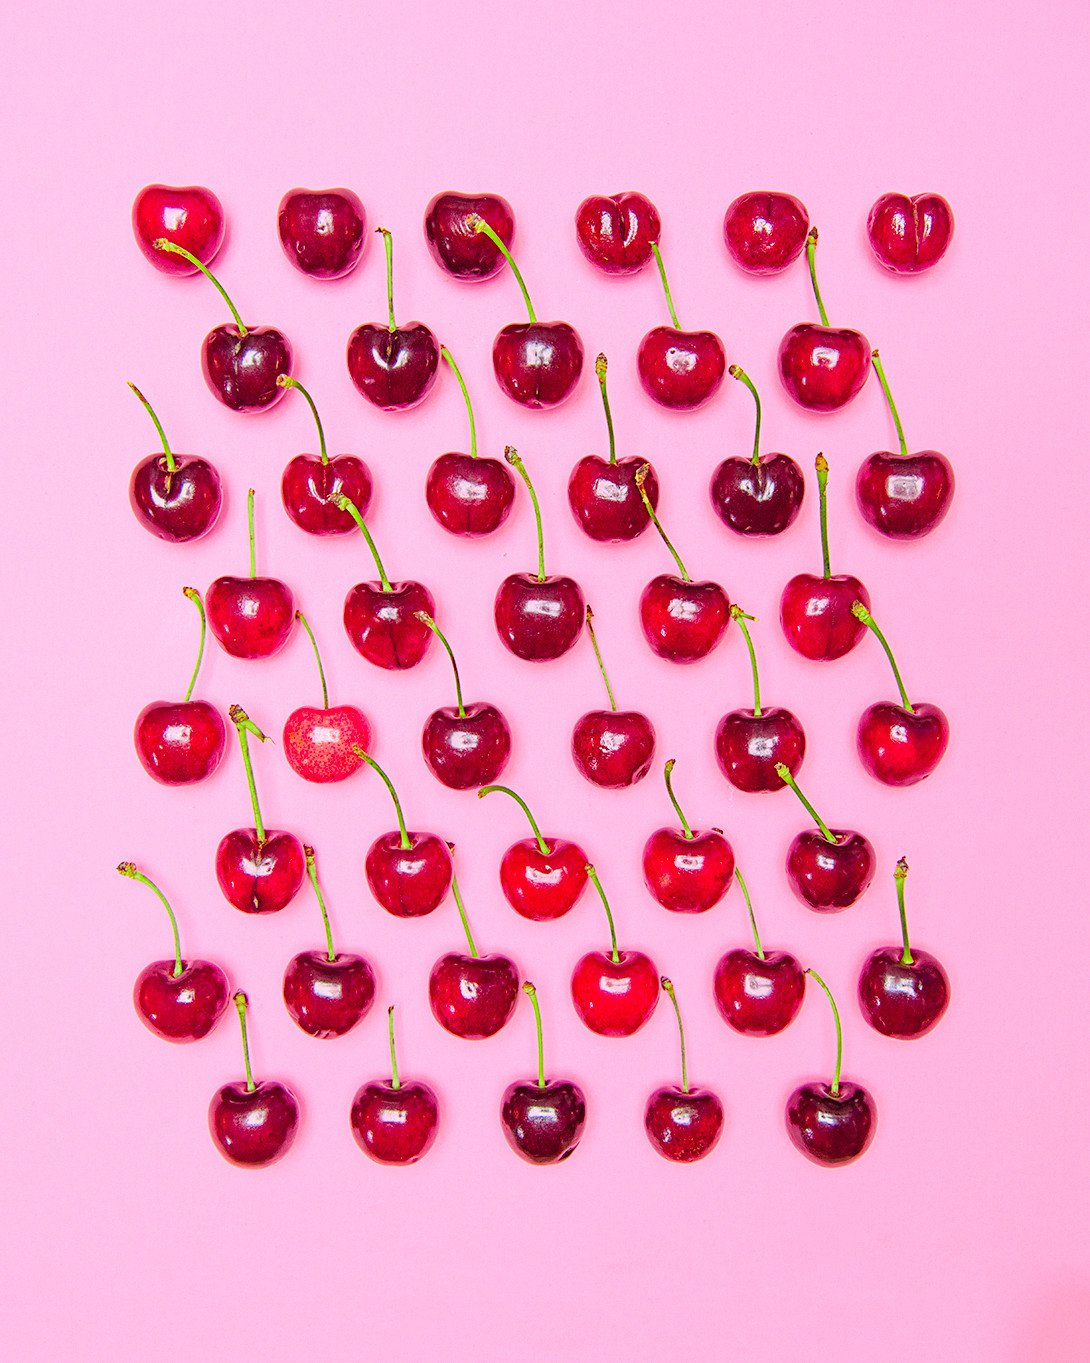 Matt Crump - Cherries, minus37